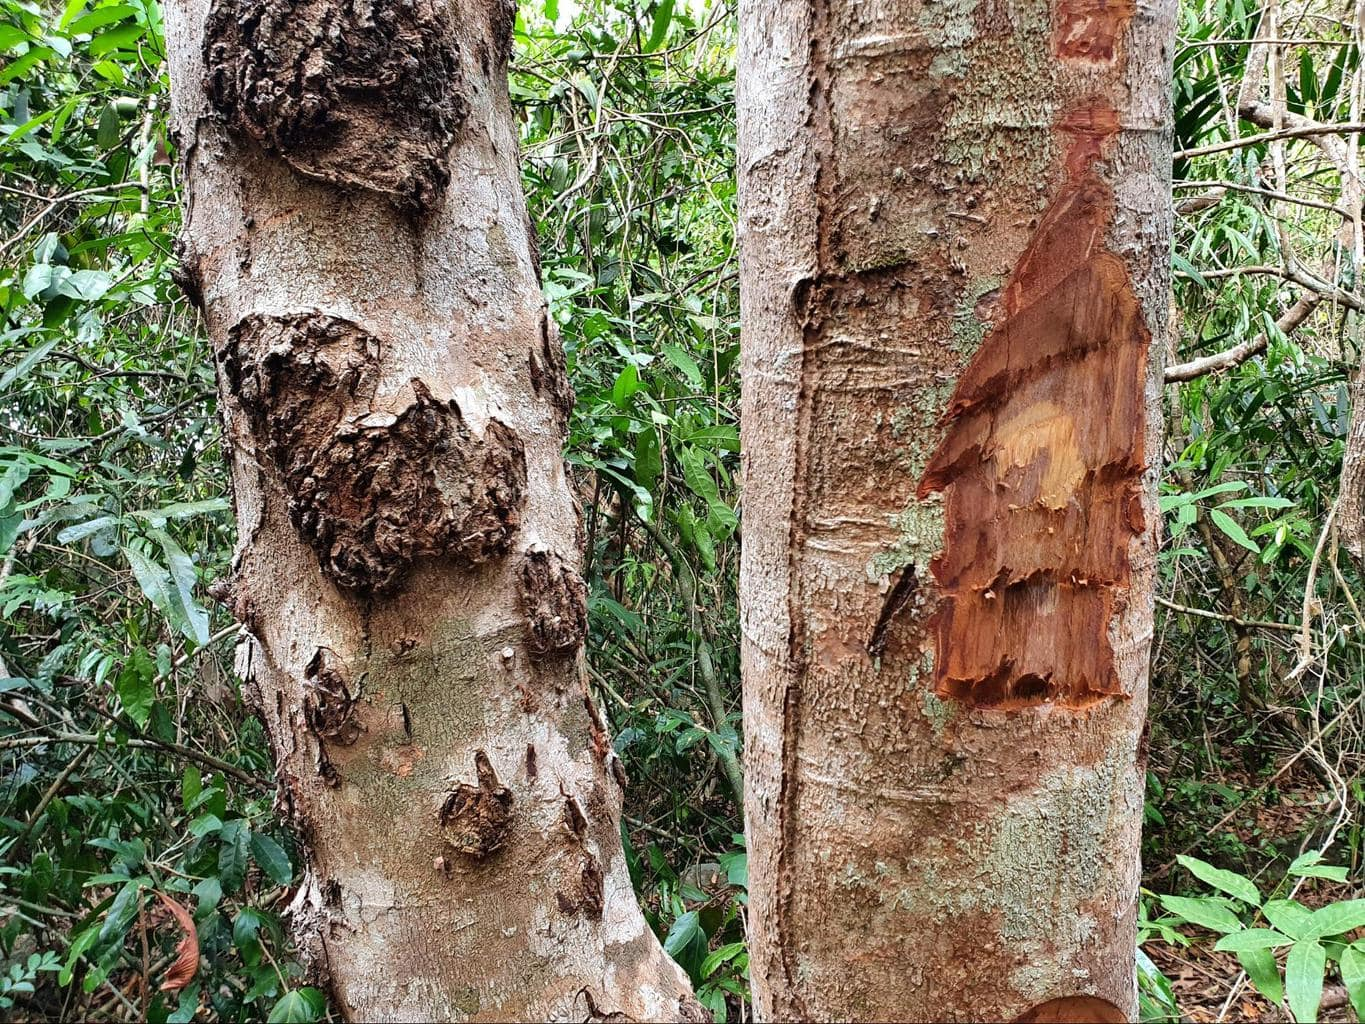 Trees cut to check if they are rosewood trees